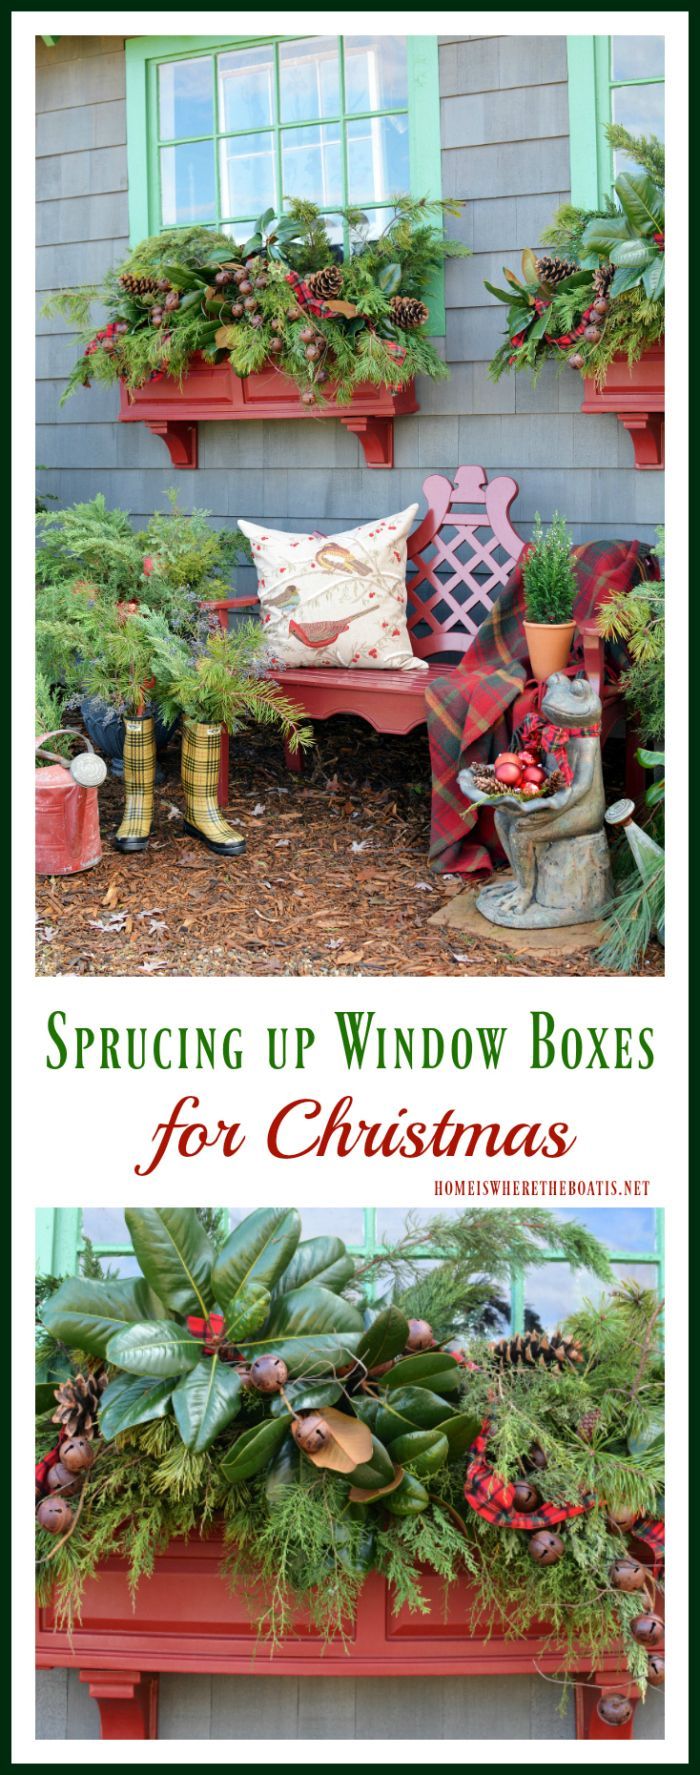 Sprucing up the window boxes for Christmas with greenery, pine cones, tartan ribbon and jingle bell garland | homeiswheretheboatis.net #PottingShed